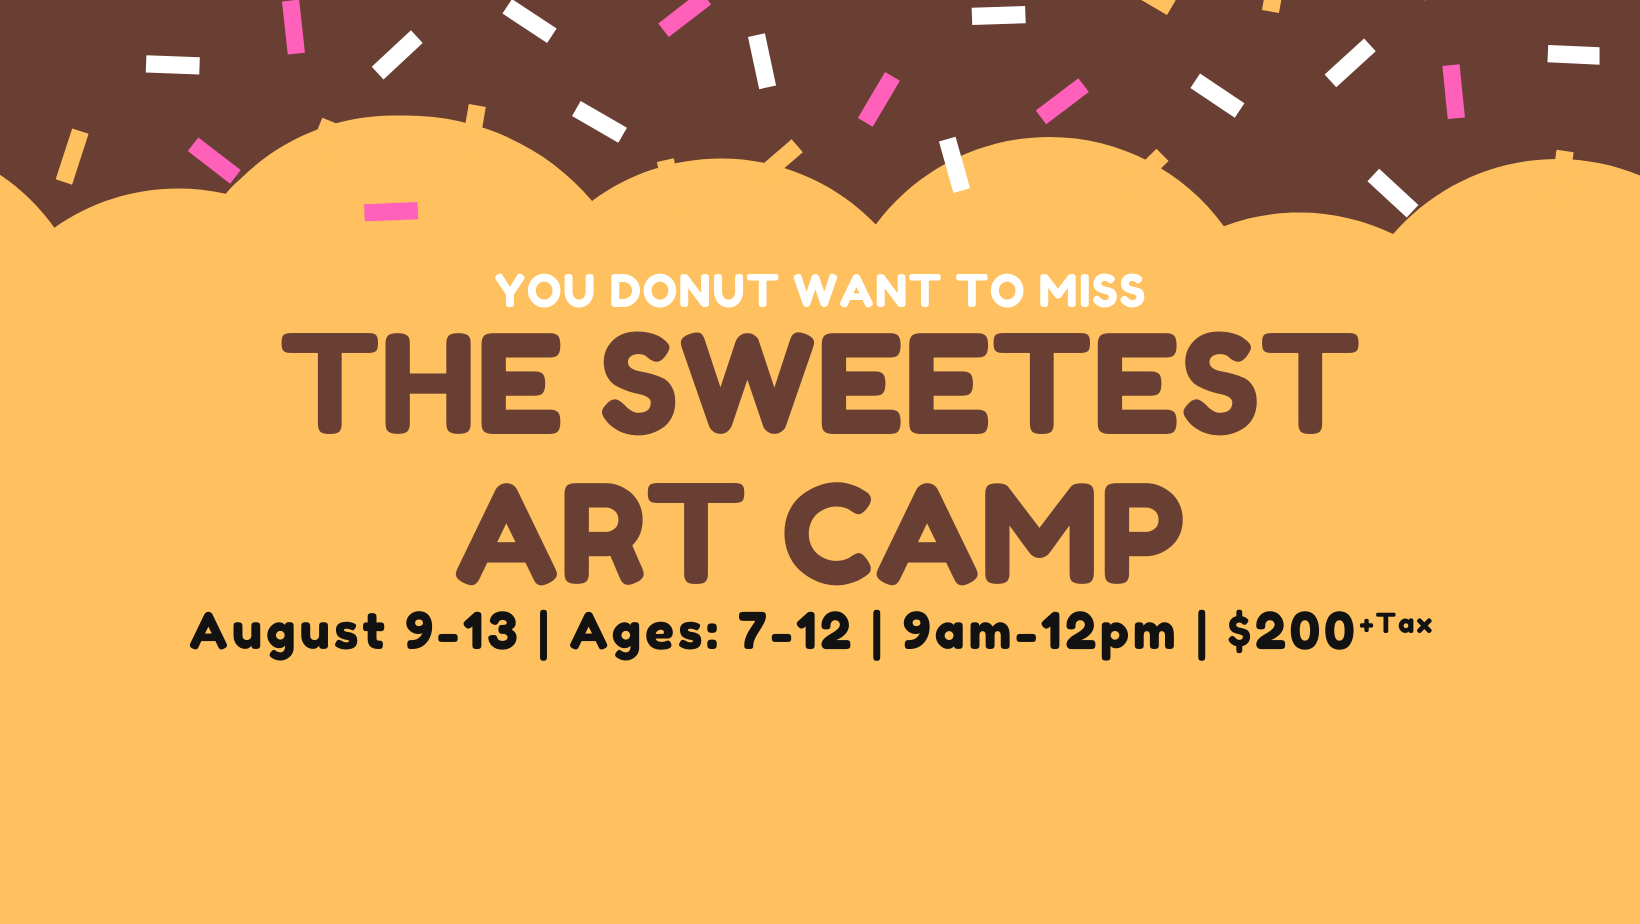 The Sweetest Art Camp (Sold out)